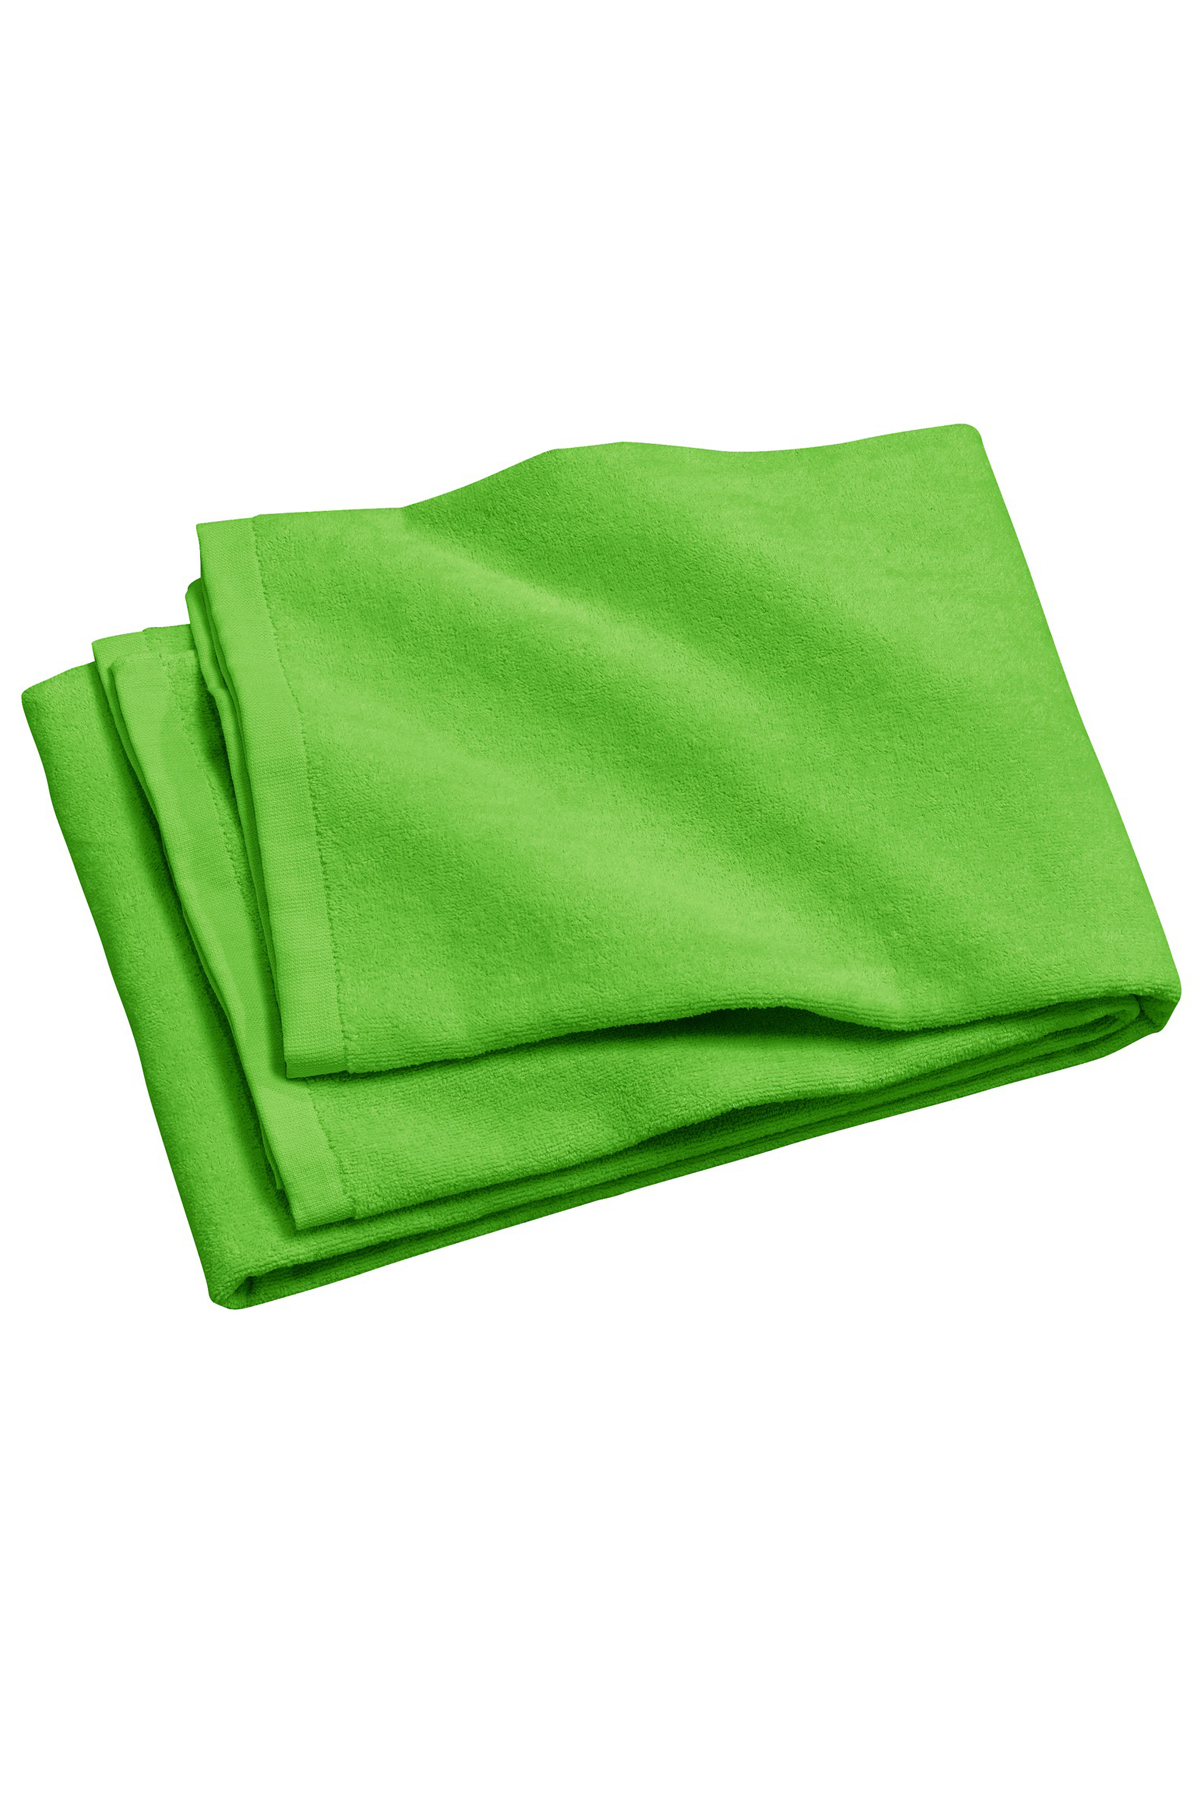 Accessories-Robes-Towels-2